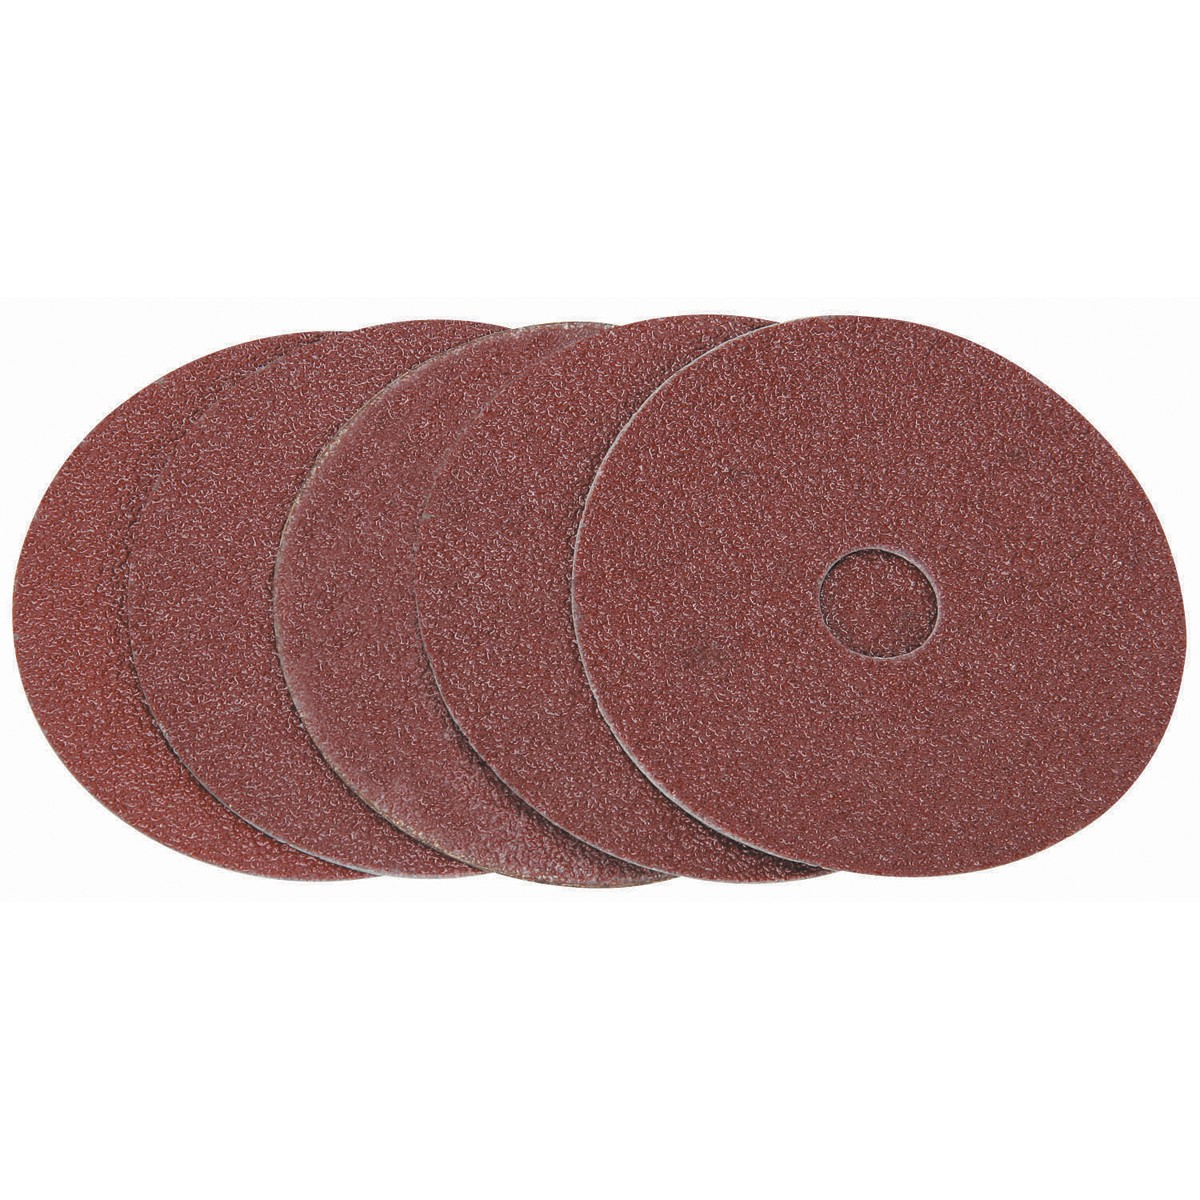 4-1/2 in. 36 Grit Resin Fiber Sanding Discs 5 Pc